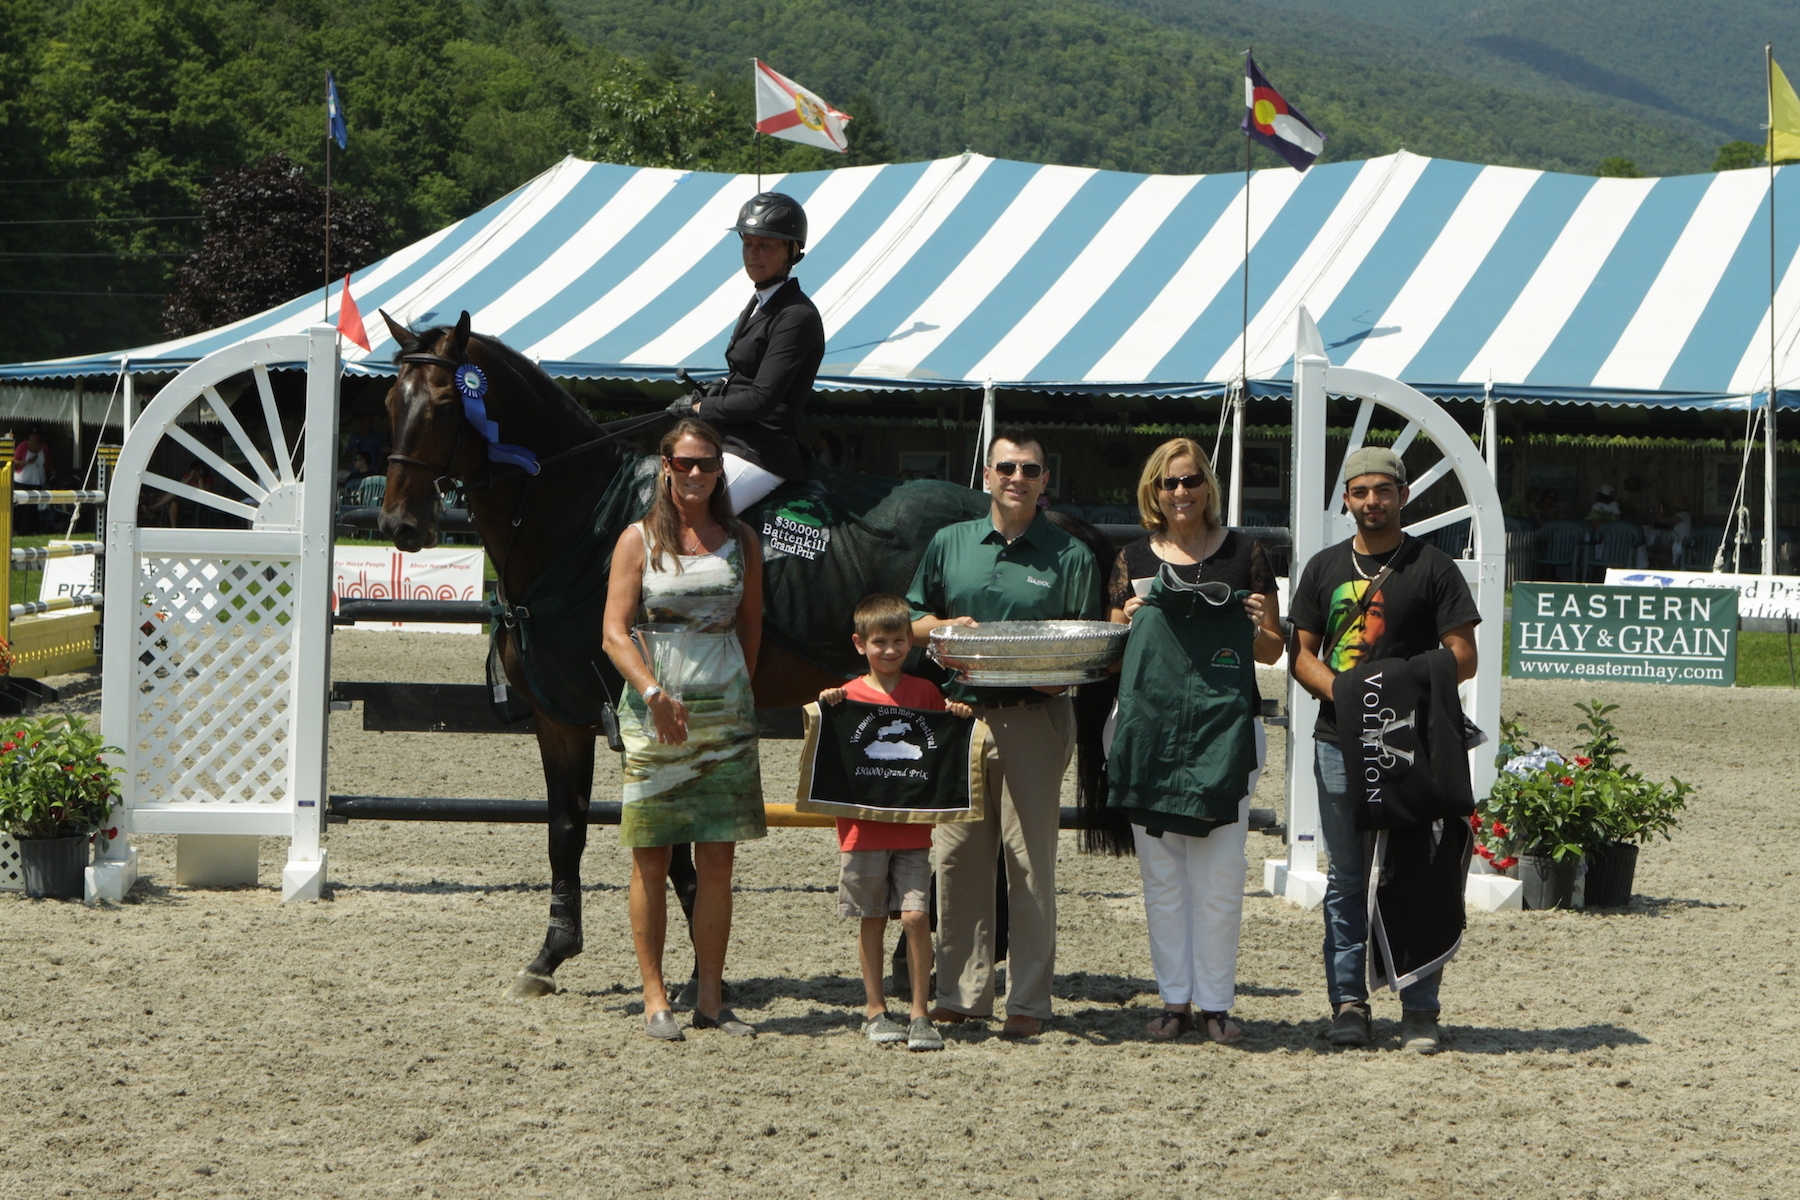 Following their win in the $30,000 Battenkill Grand Prix, presented by The Inns at Equinox, Amanda Flint, VDL Wittinger and groom Juan Pacheco, are honored by Gerry McFarland and son Kelan representing The Inns at Equinox, and Jennifer Glass and Ruth Lacey of the Vermont Summer Festival.<br><b>Photo by <a href='http://www.photoreflect.com/home/default.aspx' target='_blank'>David Mullinix Photography</a></b>